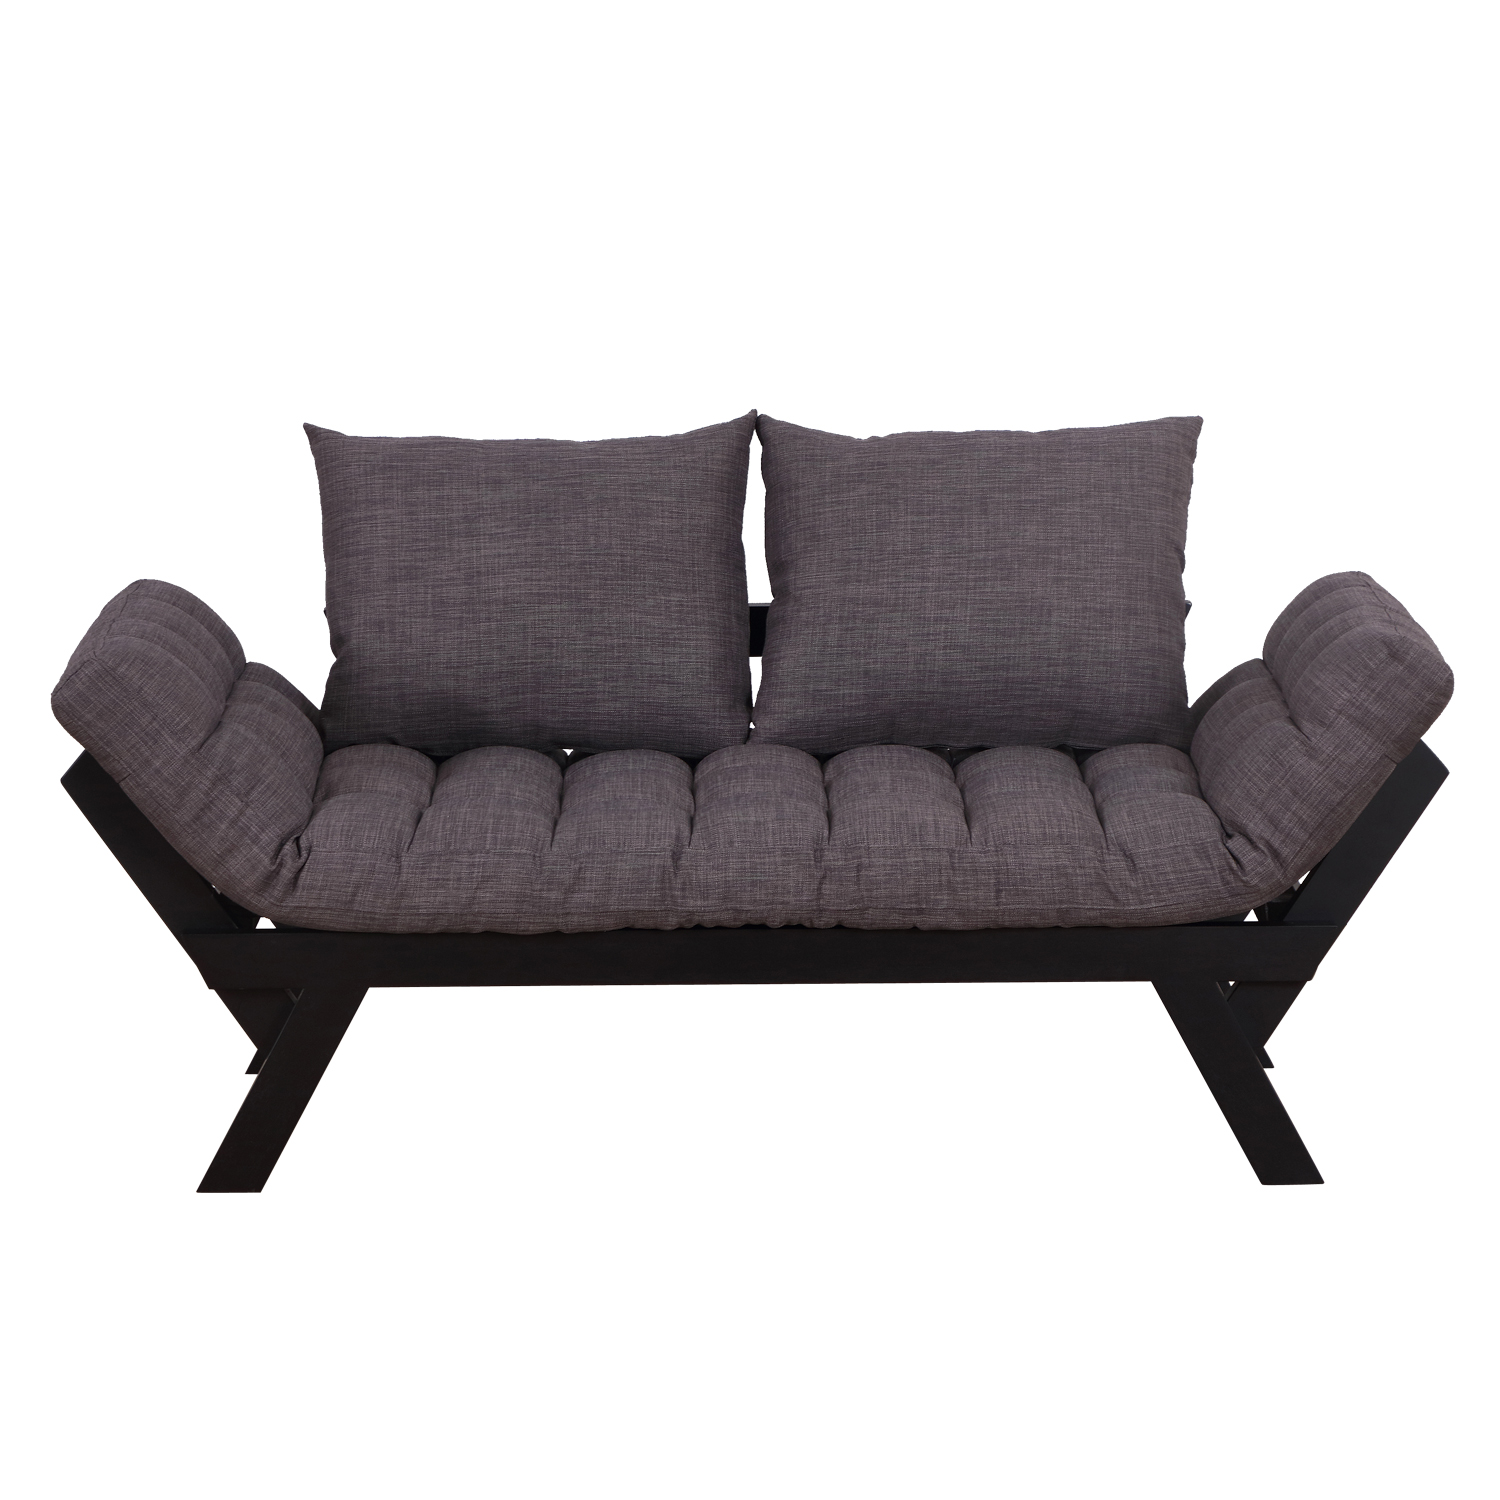 HomCom 3 Position Convertible Chaise Lounge Sofa Bed - Black / Charcoal